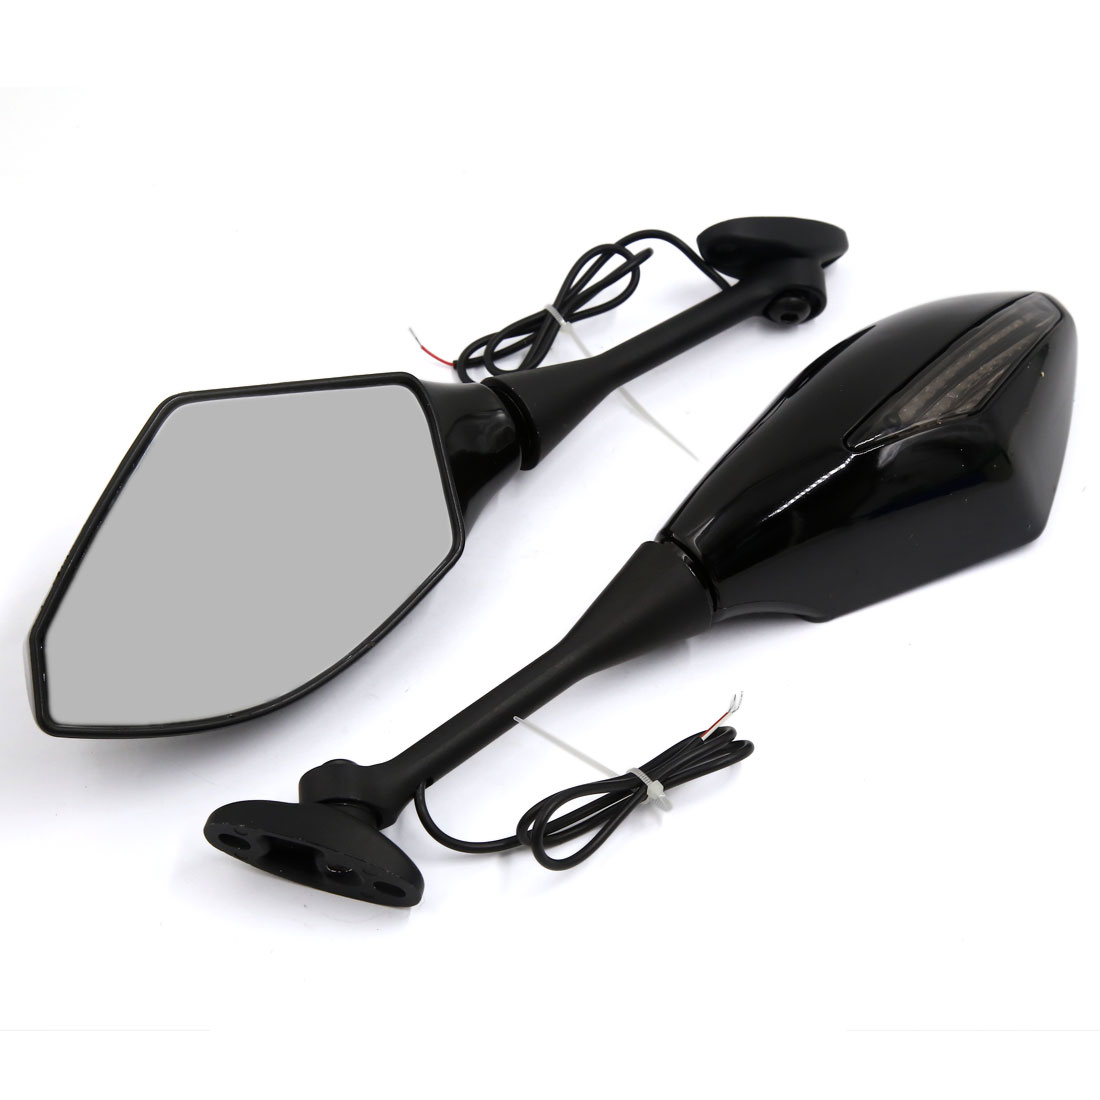 2 Pcs Yellow LED Turn Signal Light Rear View Side Mirror for Motorcycle